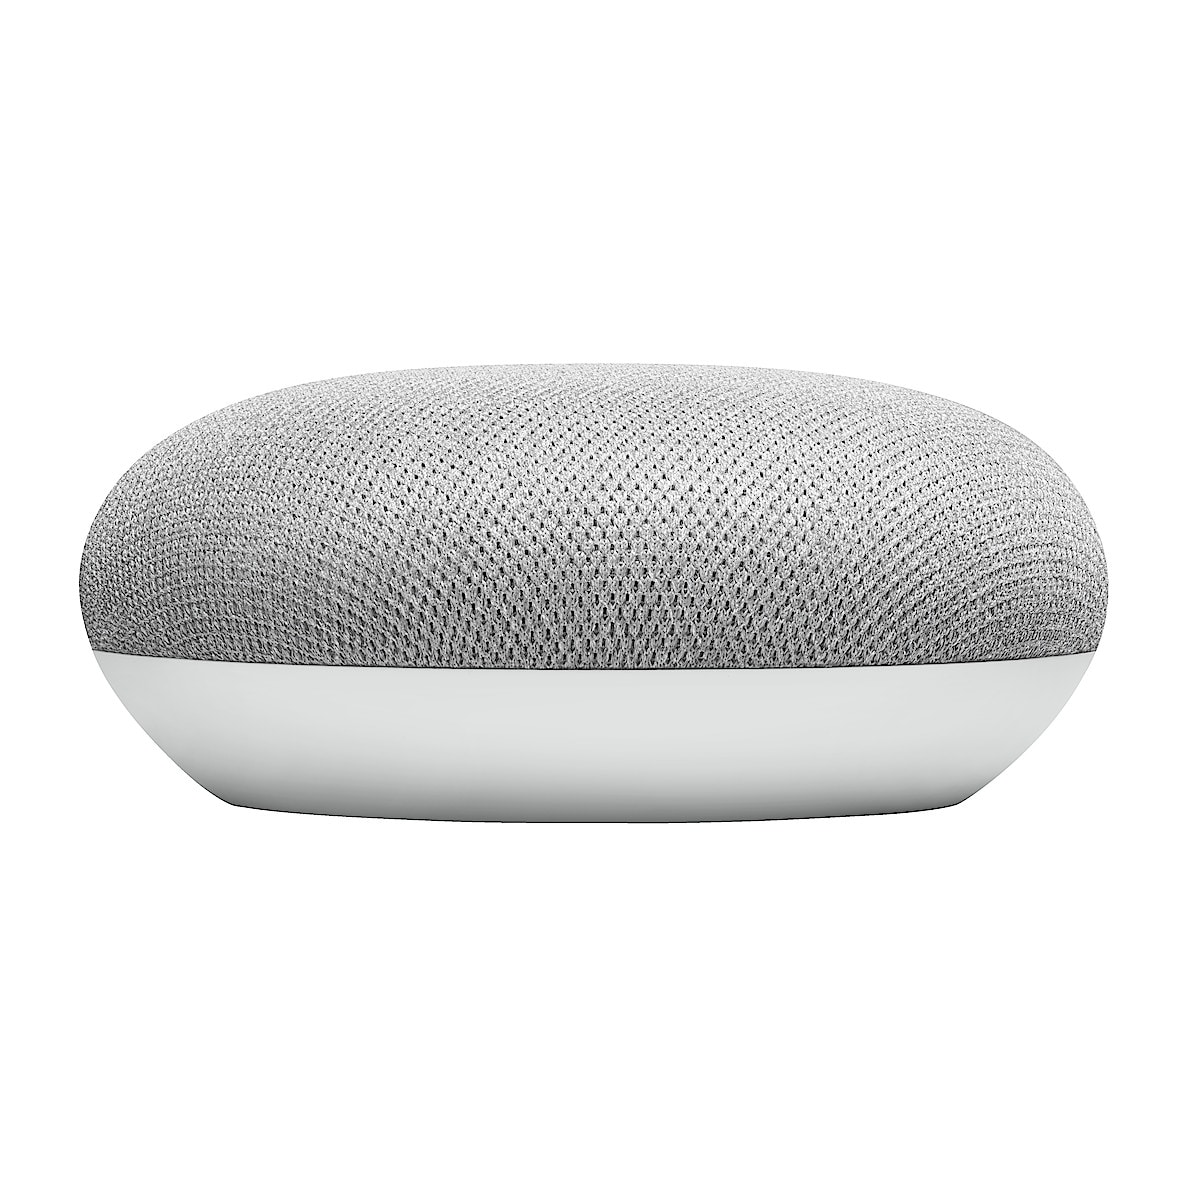 Röstassistent Google Home Mini, svensk version